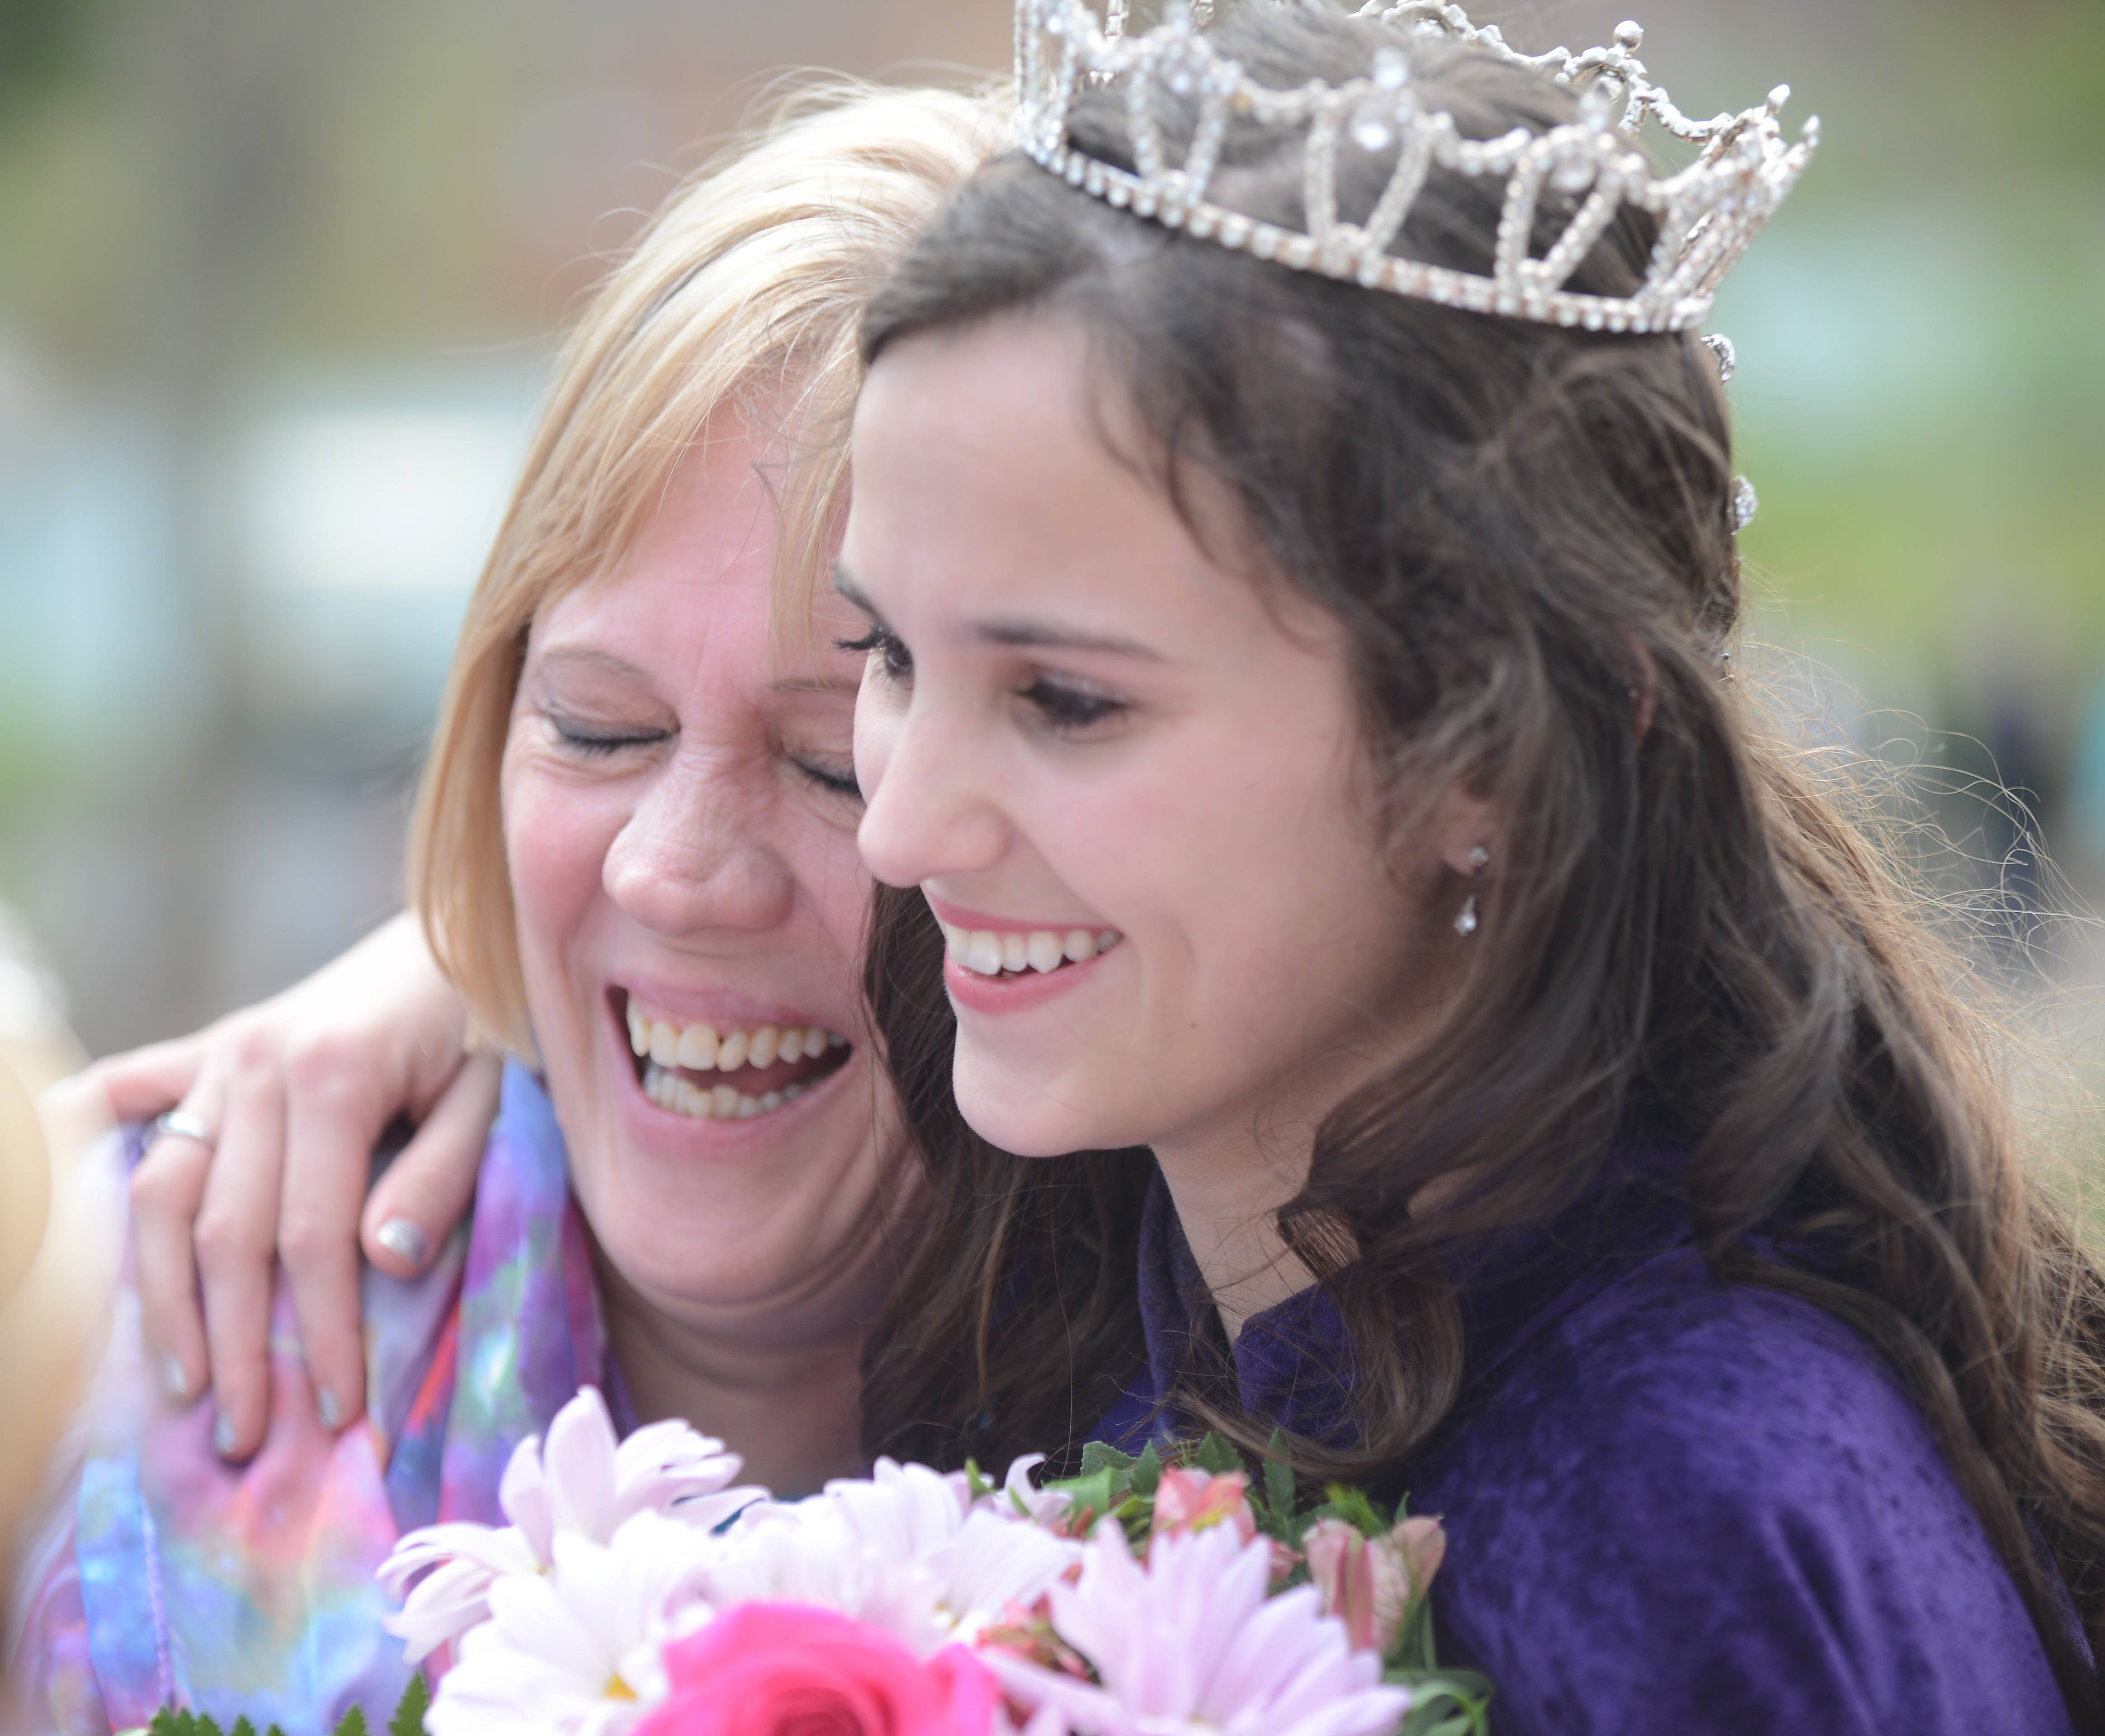 Newly crowned Lilac Queen Kendall Kott hugs Terri Soehrmann, the co-chair of the Lilac Queen coronation after Saturday's ceremony.